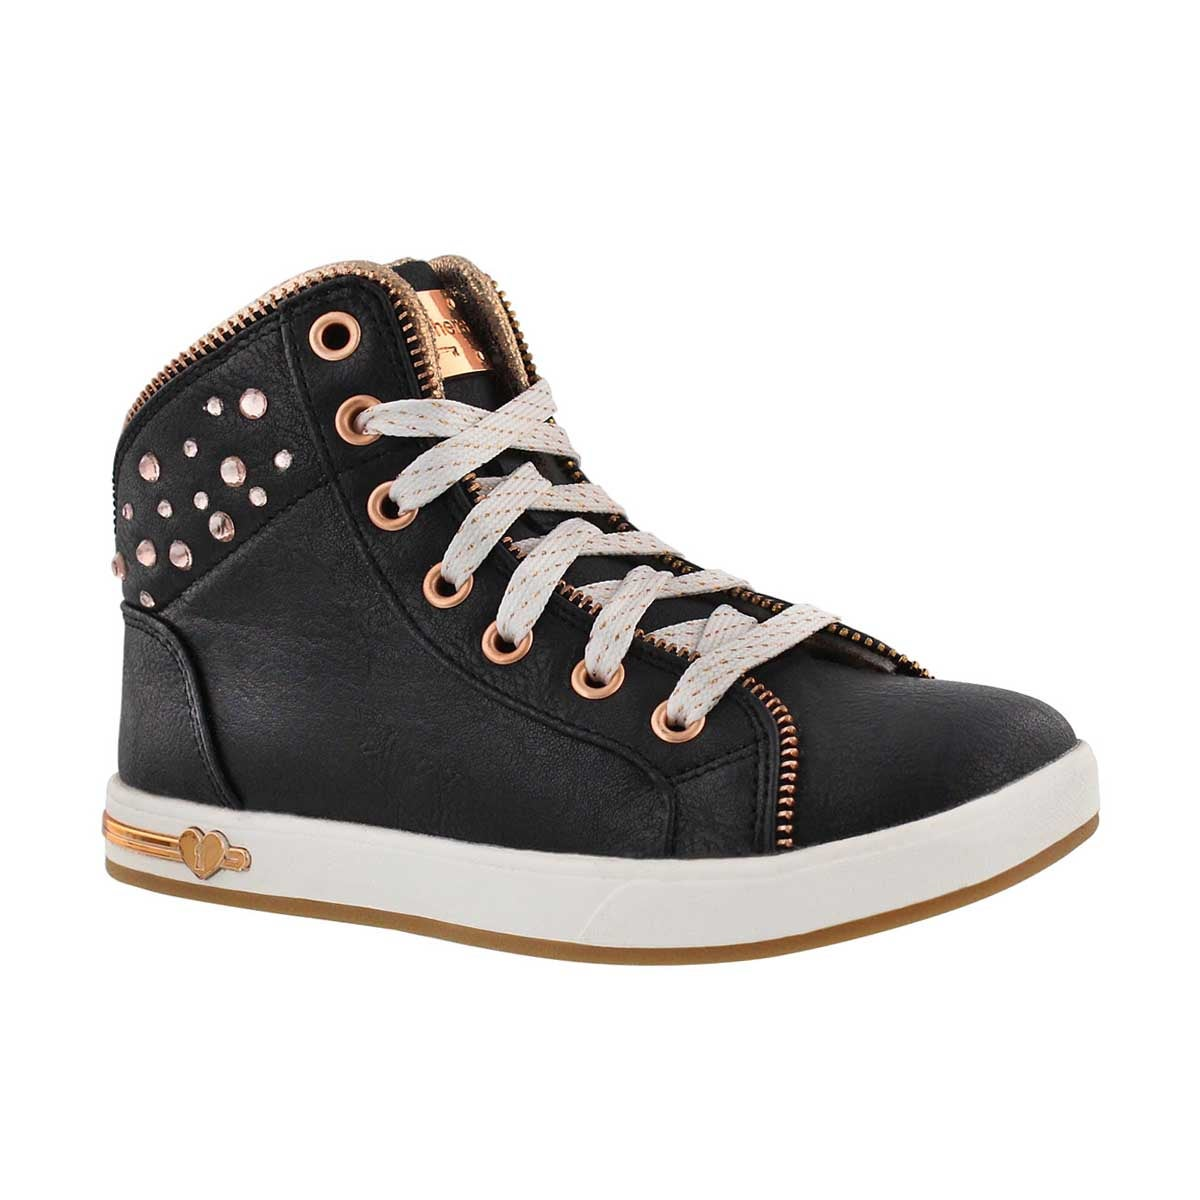 Girls' SHOUTOUTS black high top sneakers